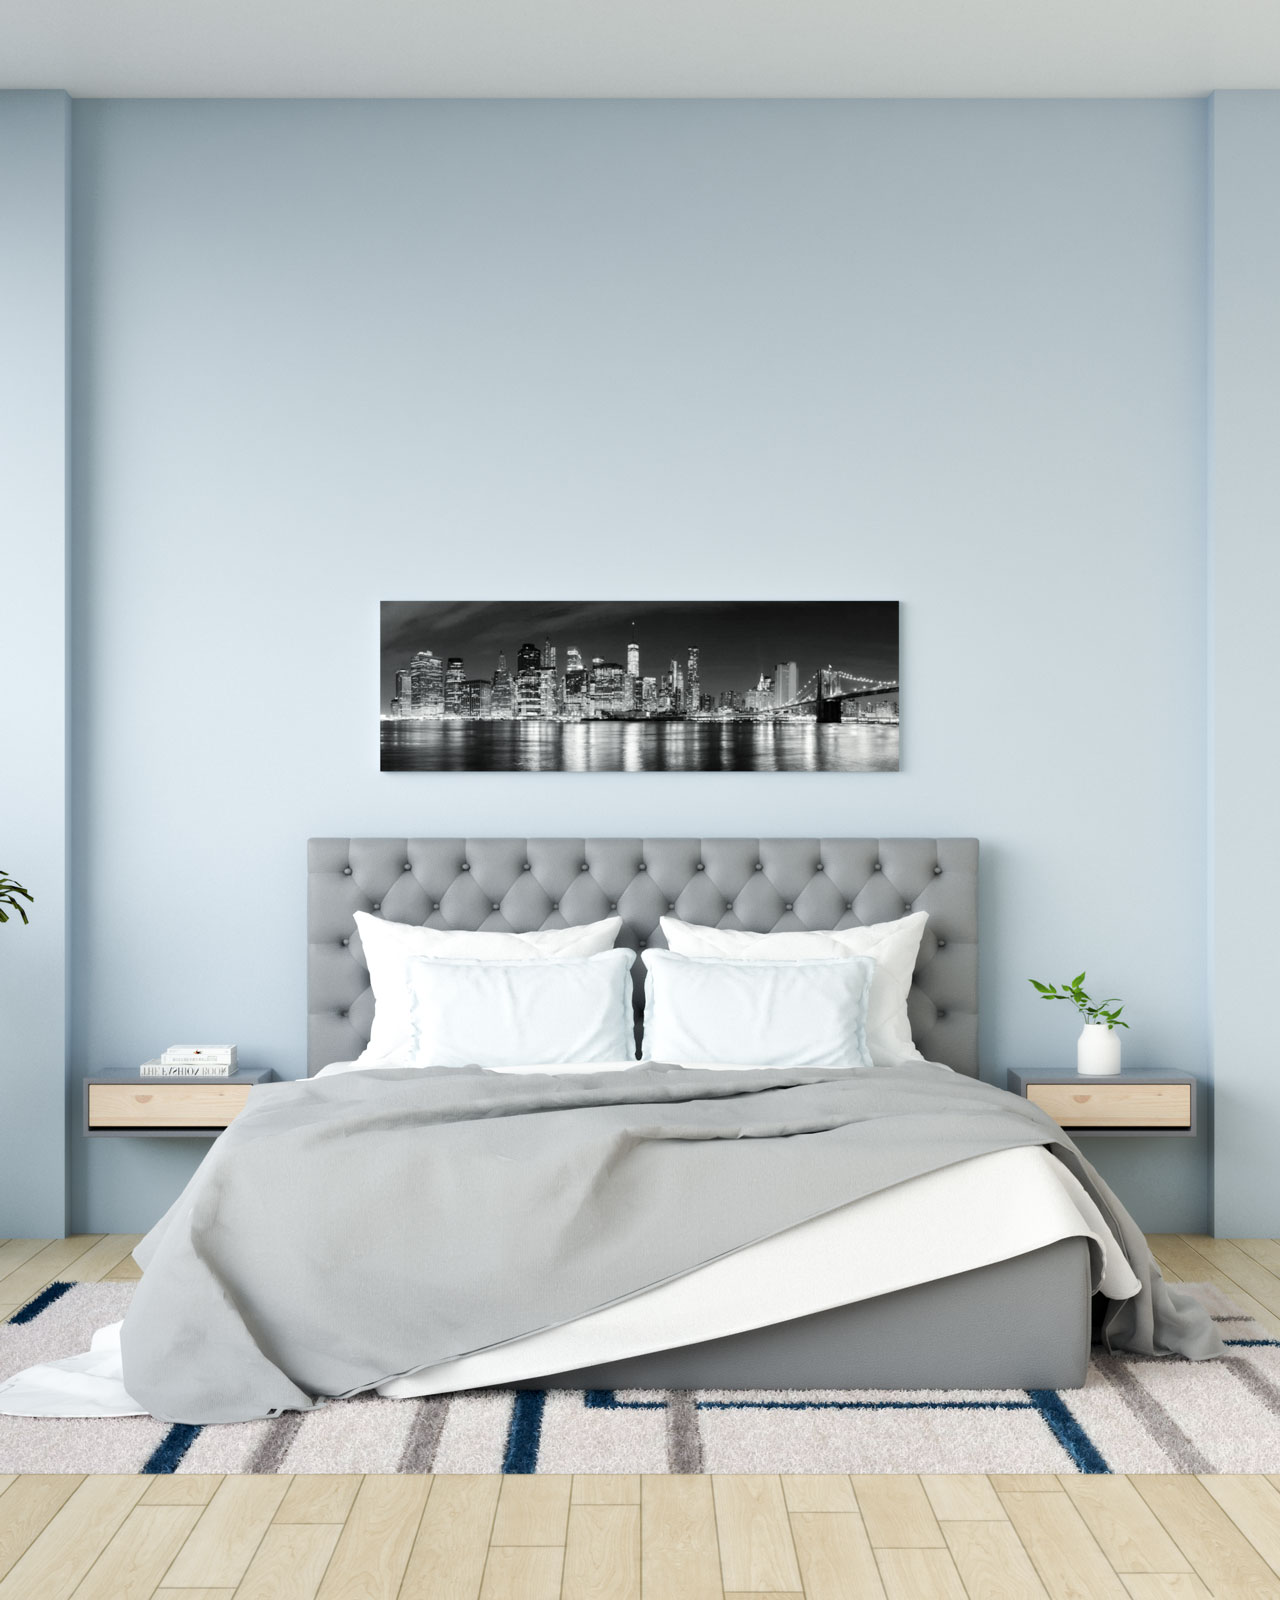 Light blue wall in bedroom with gray bed